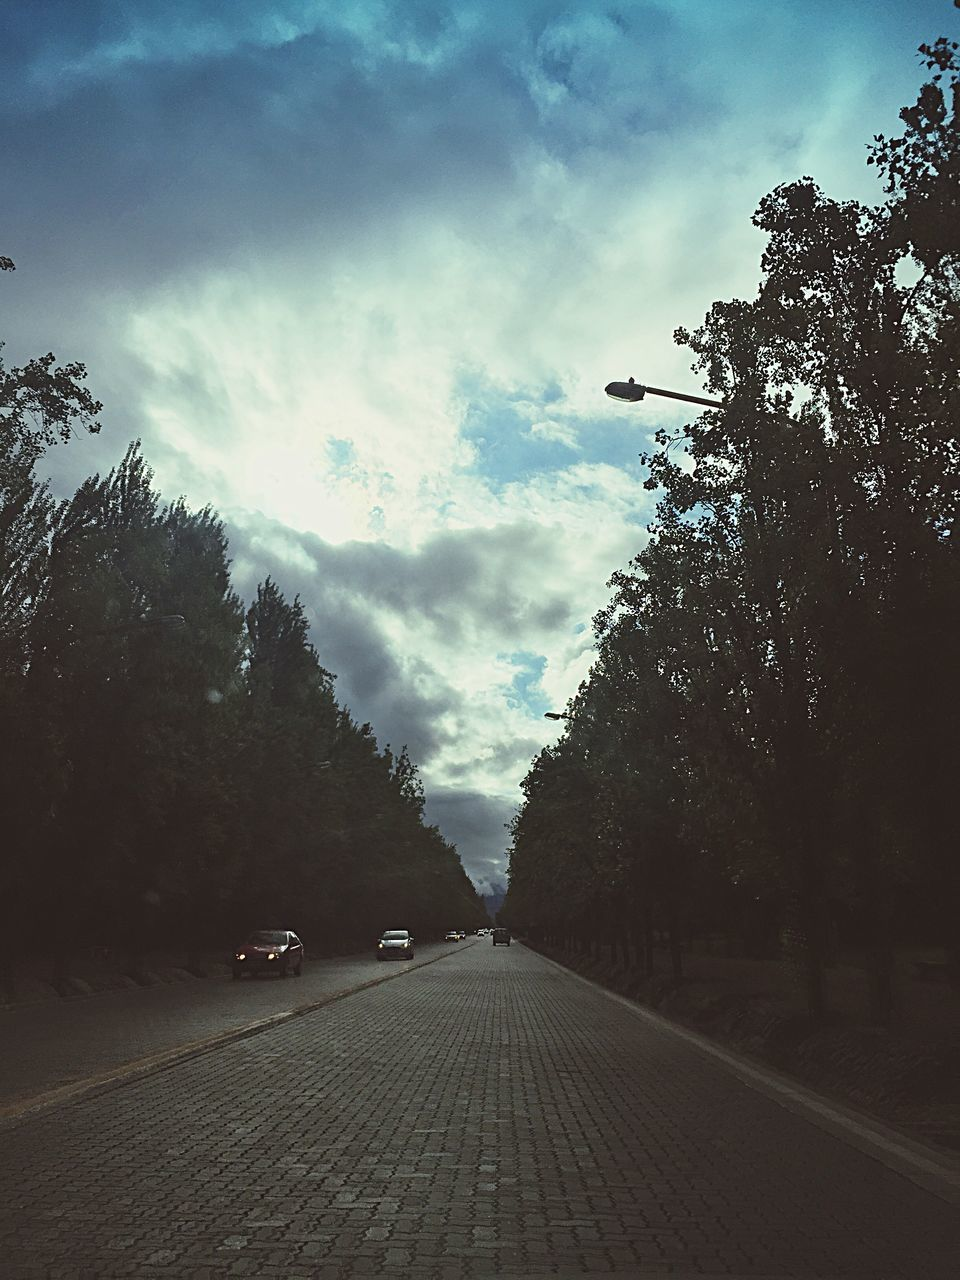 tree, the way forward, transportation, road, sky, car, cloud - sky, land vehicle, street, mode of transport, outdoors, day, no people, nature